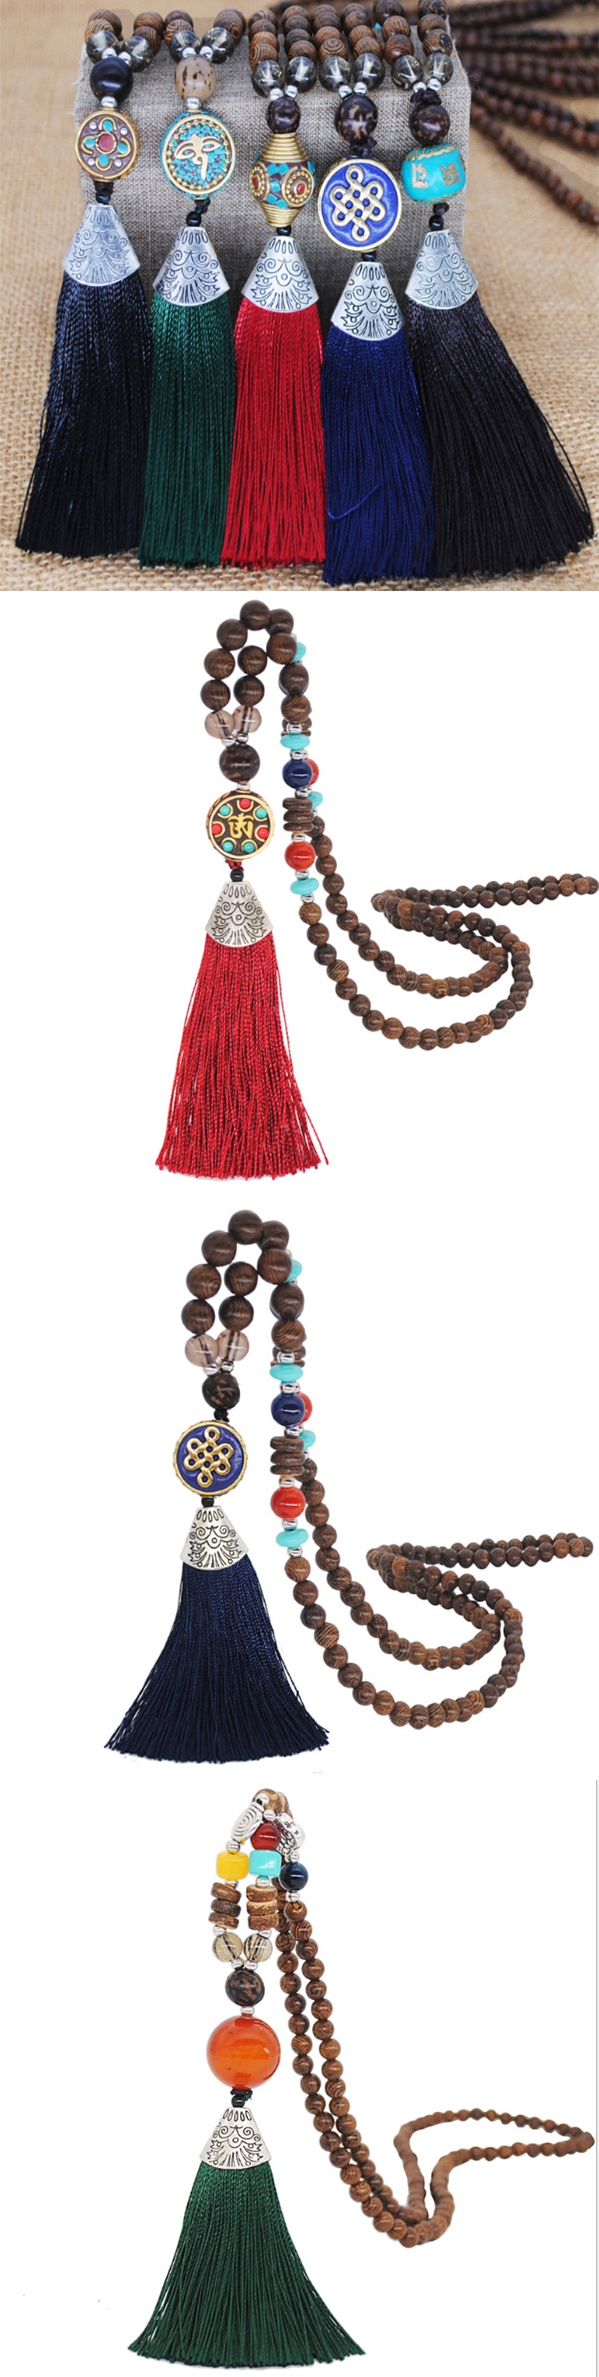 Necklaces  Ethnic Style Long Tassel Necklaces is part of food-recipes - Buy 2 Get 8% OFF Code GIFT8  Item ID G3102 Style Vintage,Casual TypePendant Necklace Weight About 30g Material Polyester  Package Includes 1 xNecklace Shipping Receiving time   Processing time + Shipping time Return Policy Our Guarantee Return or exchange within 14 days from the delivered date  Request 1  Items received within 14 days from the delivered date  2  Items received unused, undamaged and in original package  3  Return shipping fee is paid by buyer  4 We will refund the product payment only once we receive and check the item  More information >>